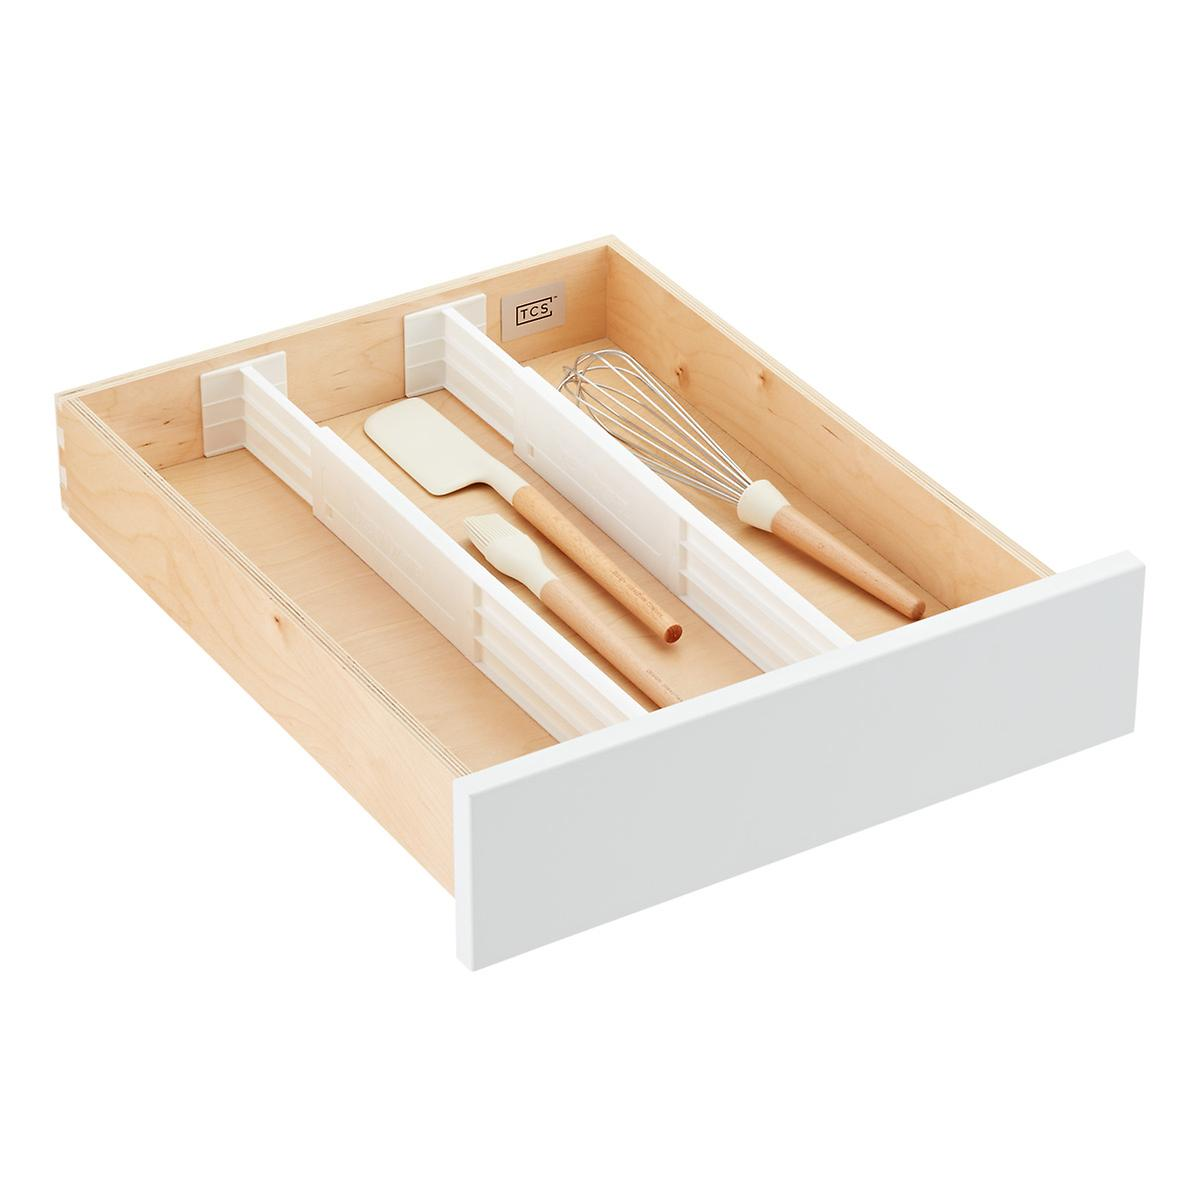 3 Dream Drawer Organizers The Container Store